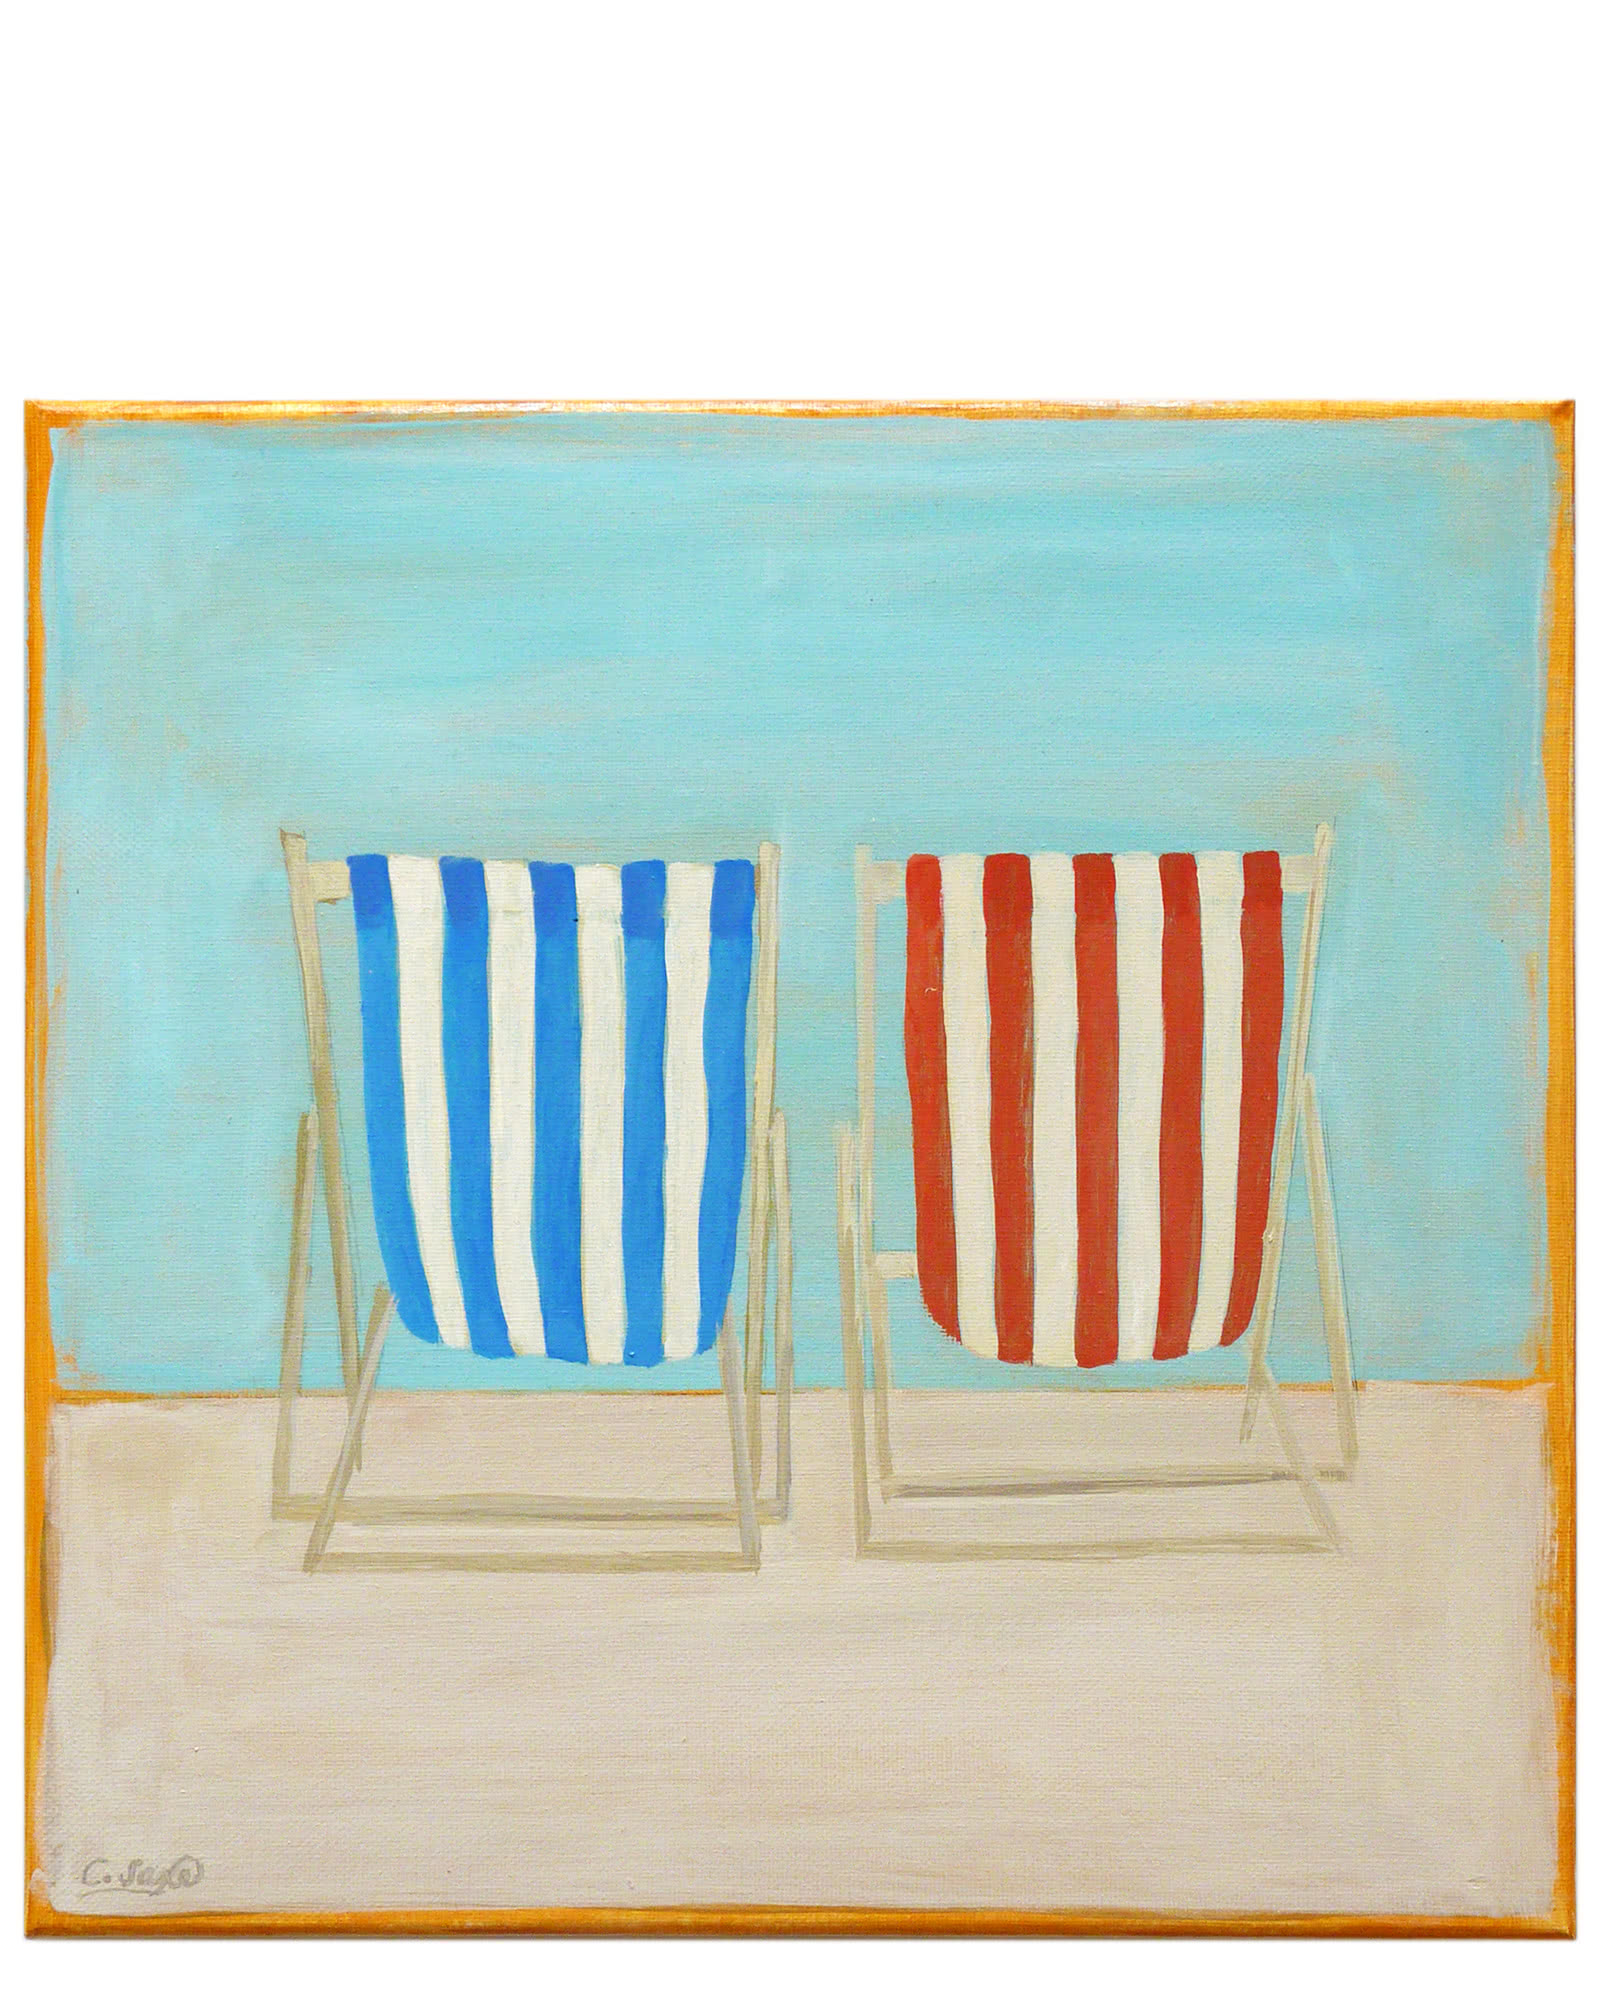 """Beach Chairs"" by Carol Saxe,"